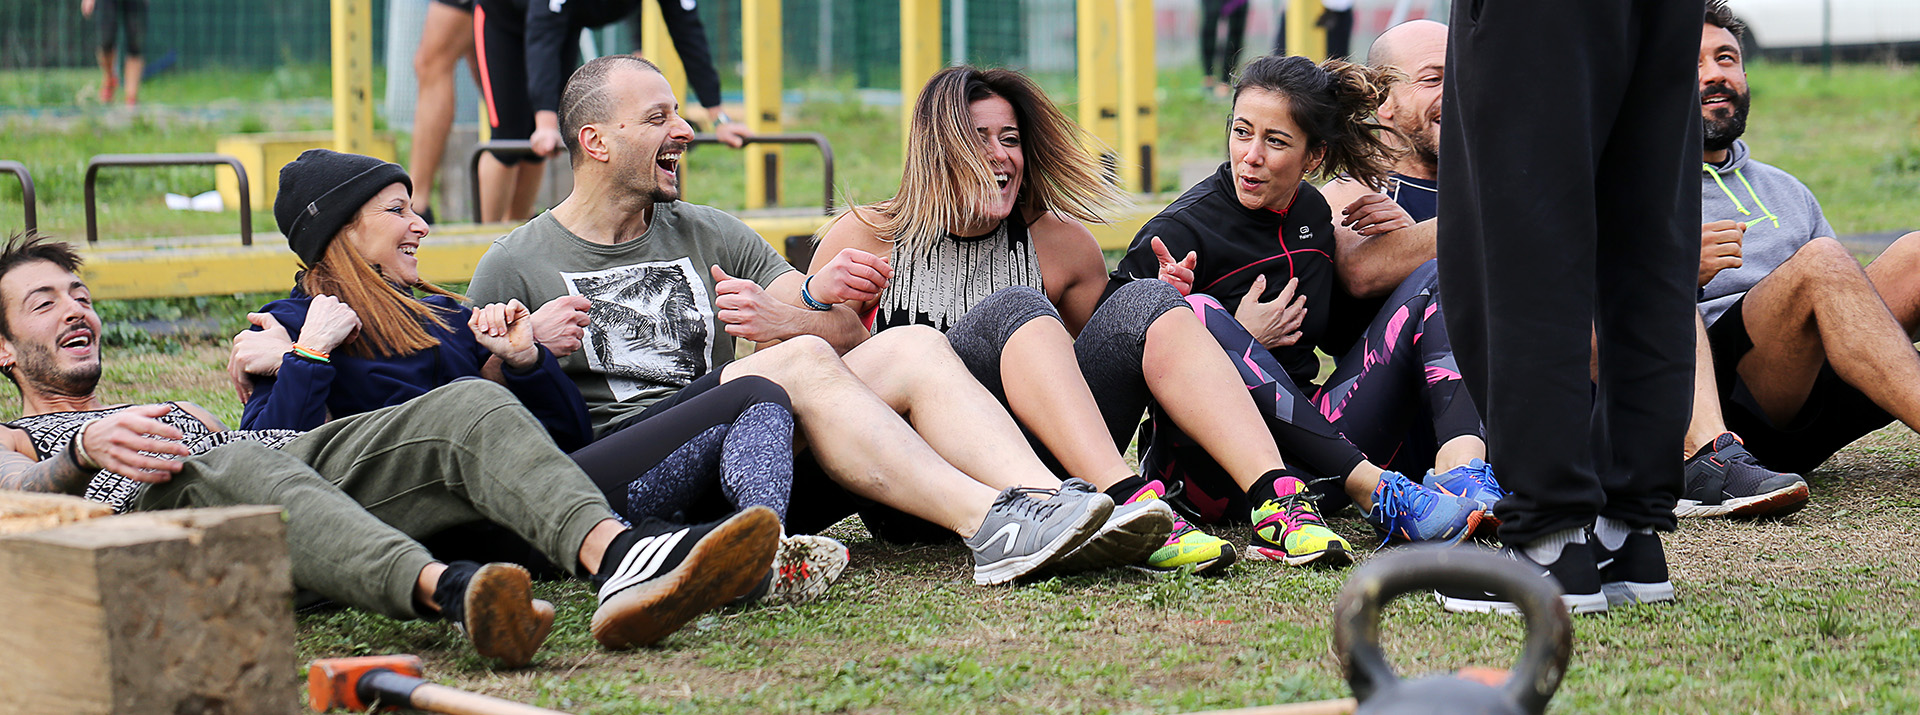 Palestra firenze outdoor fitness personal trainer